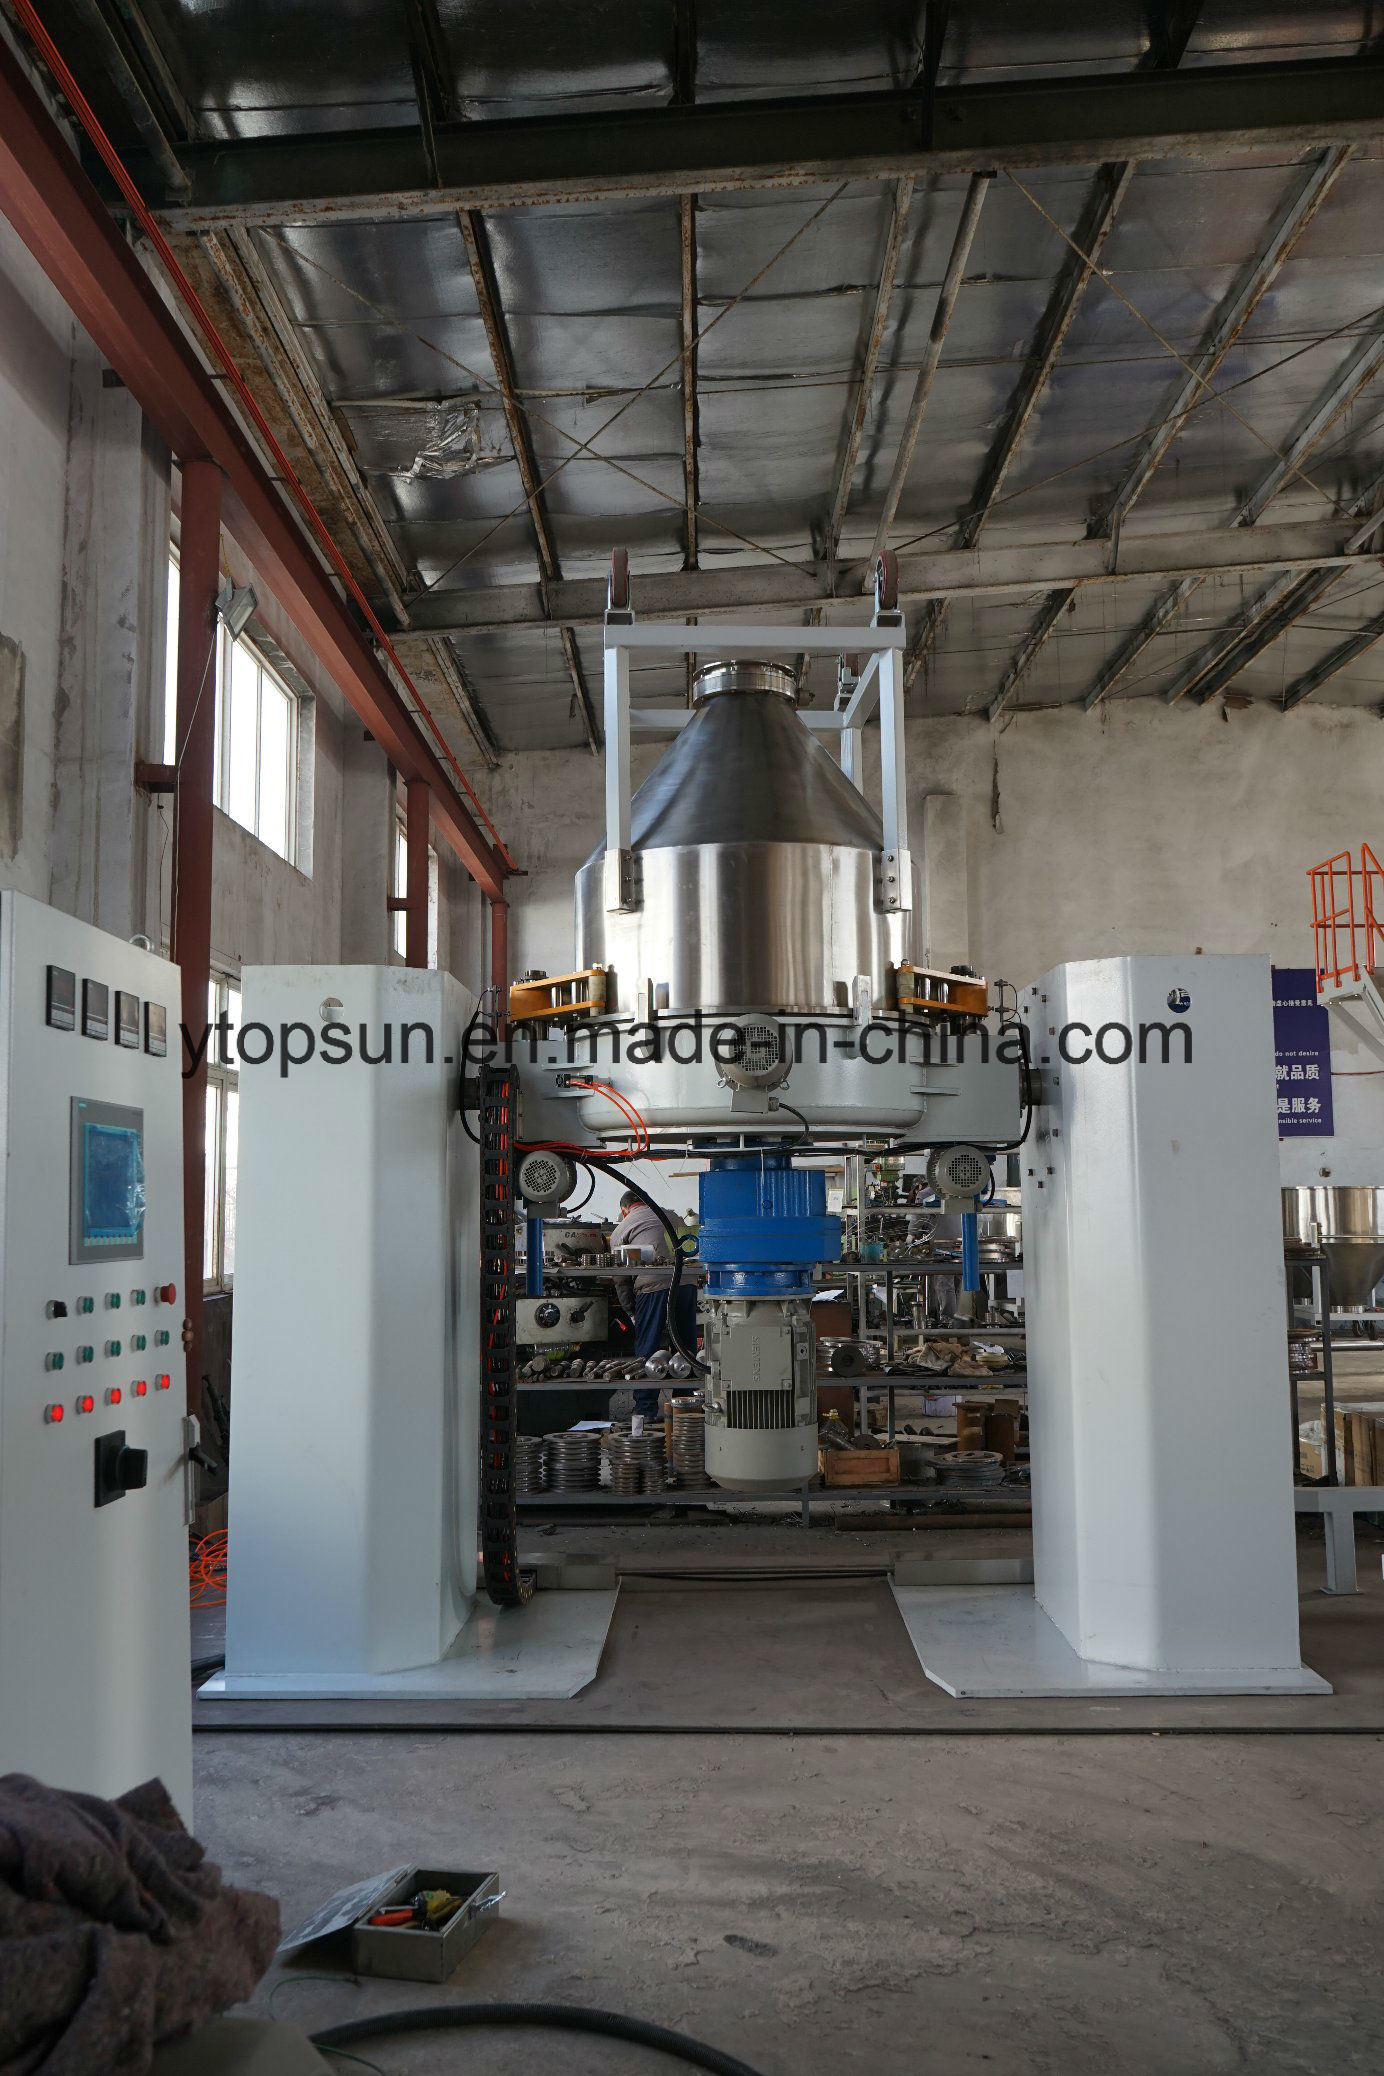 New Style Container Mixer for Powder Coating